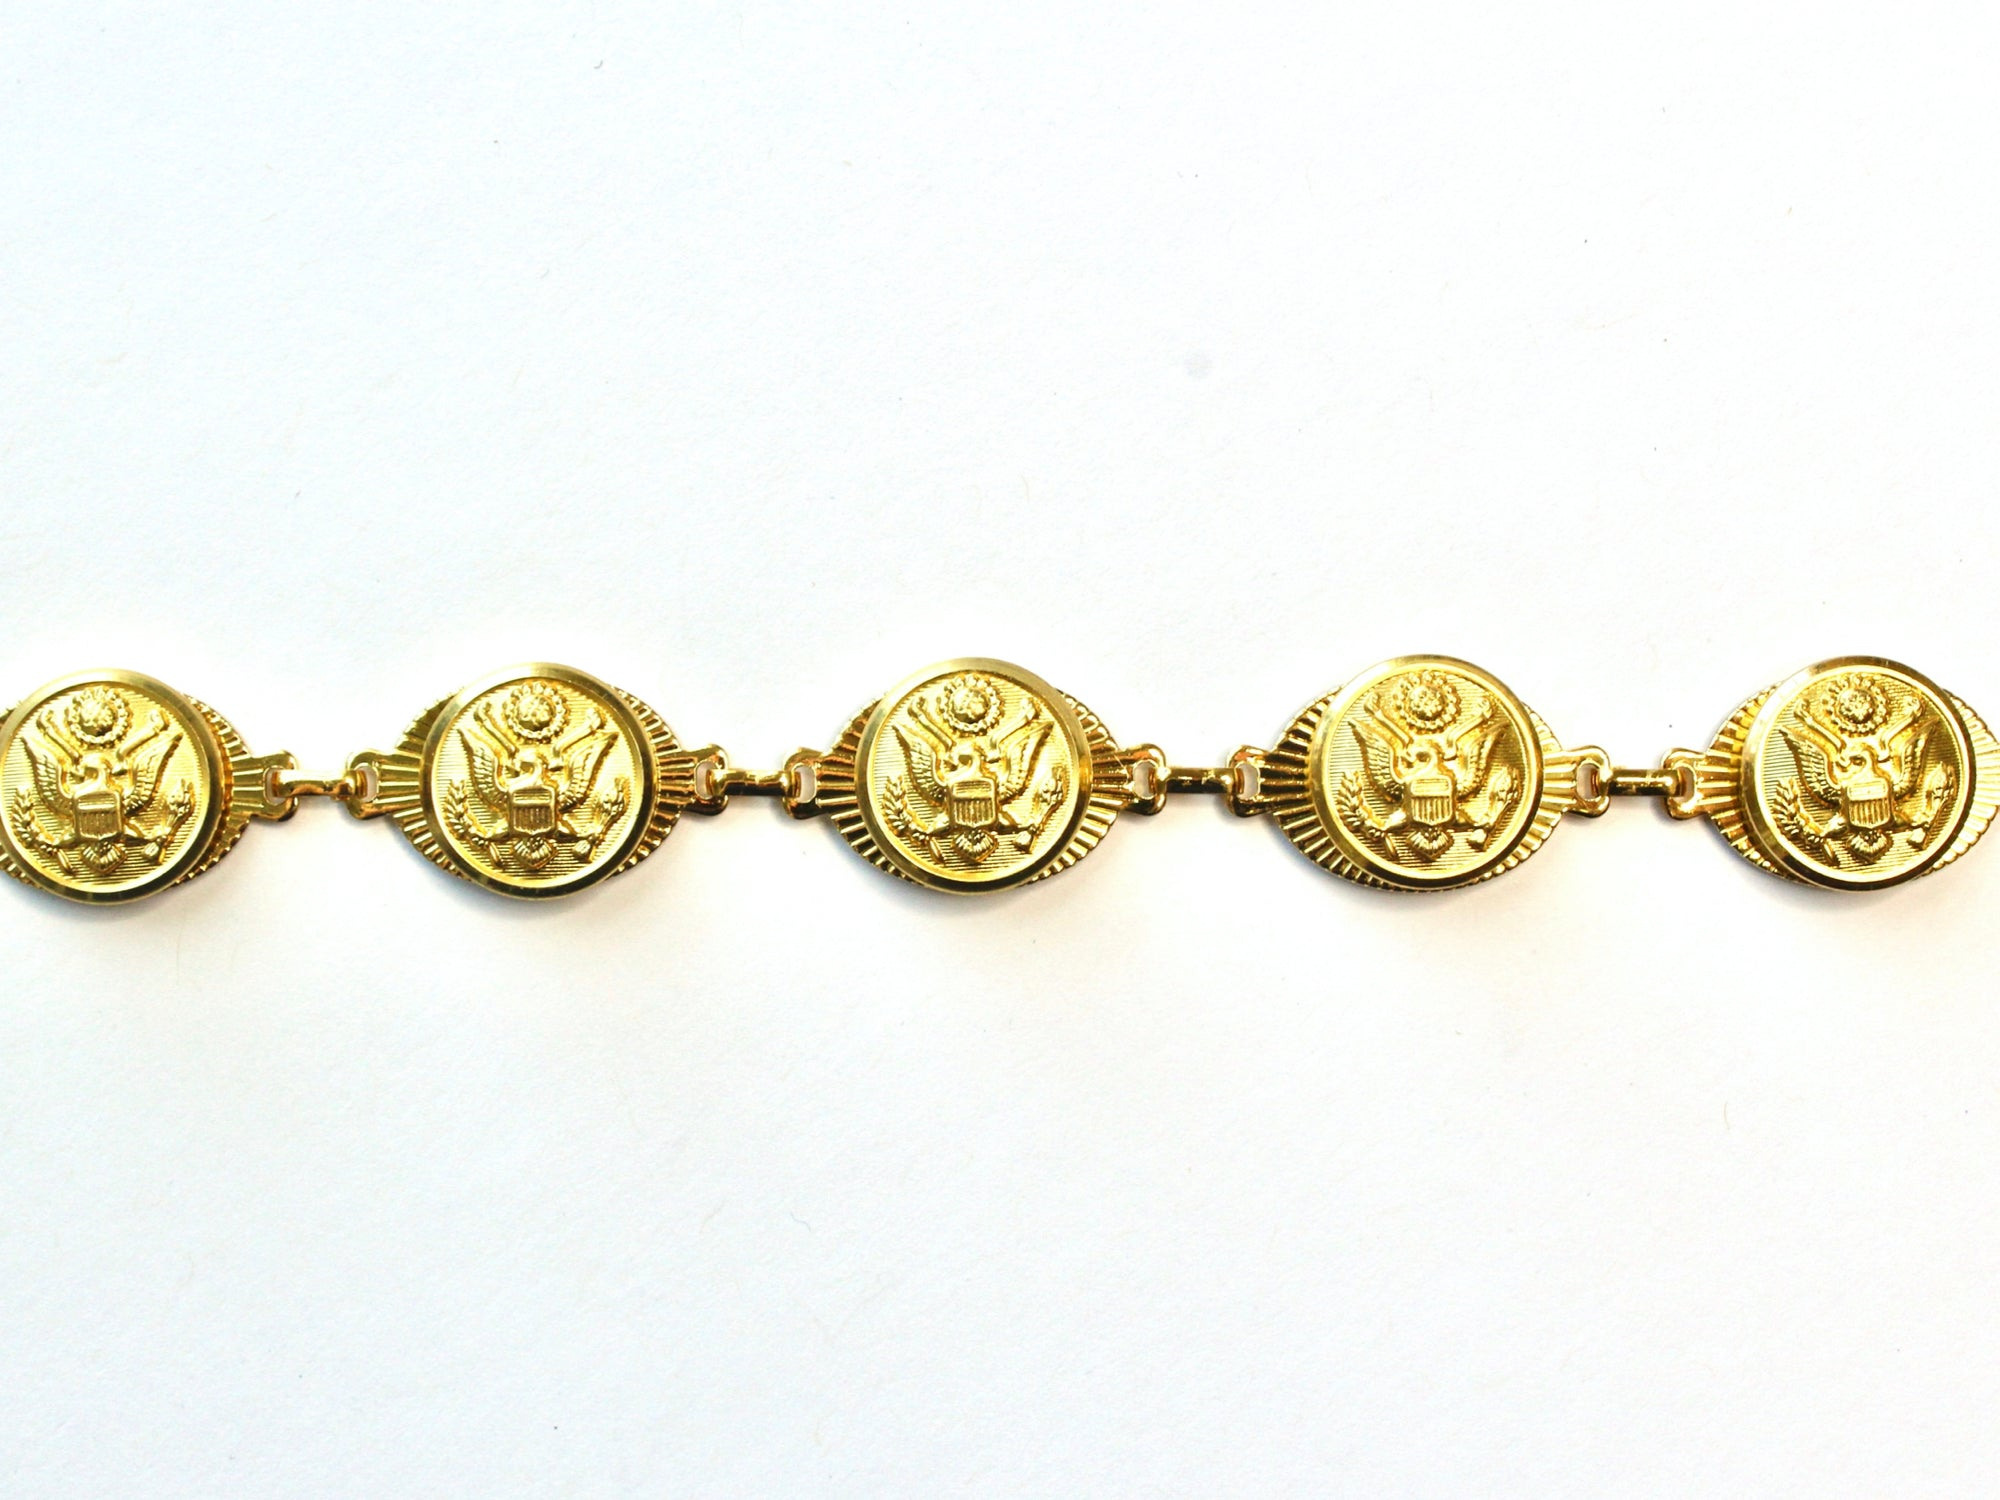 Military Button Small Linked Bracelet in Gold